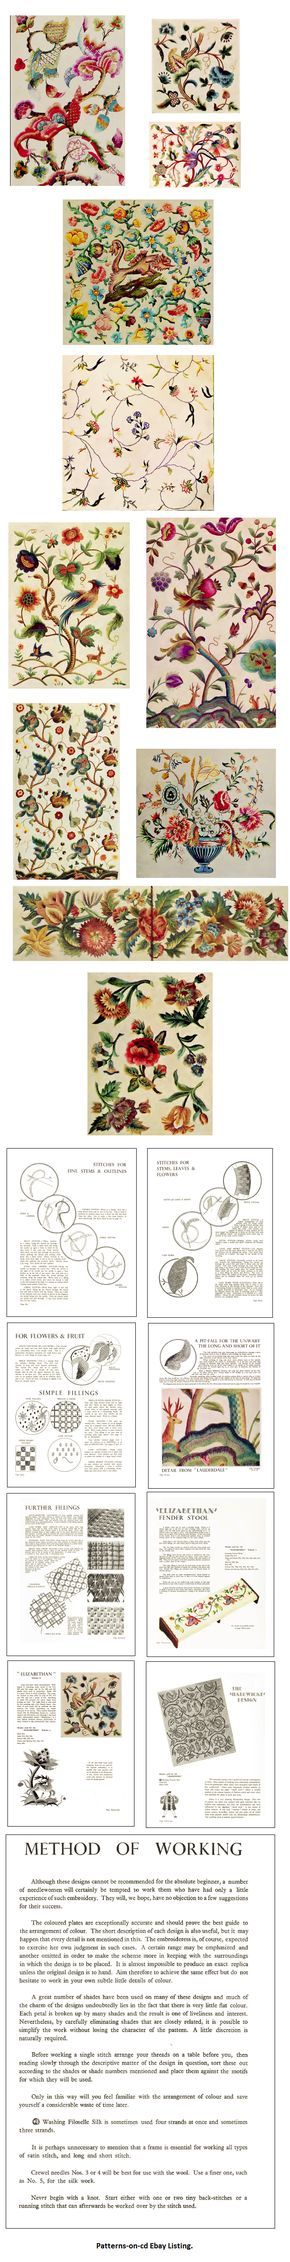 Jacobean Hand Embroidery Designs for Floss Thread Embroidery How to Manual on CD | eBay